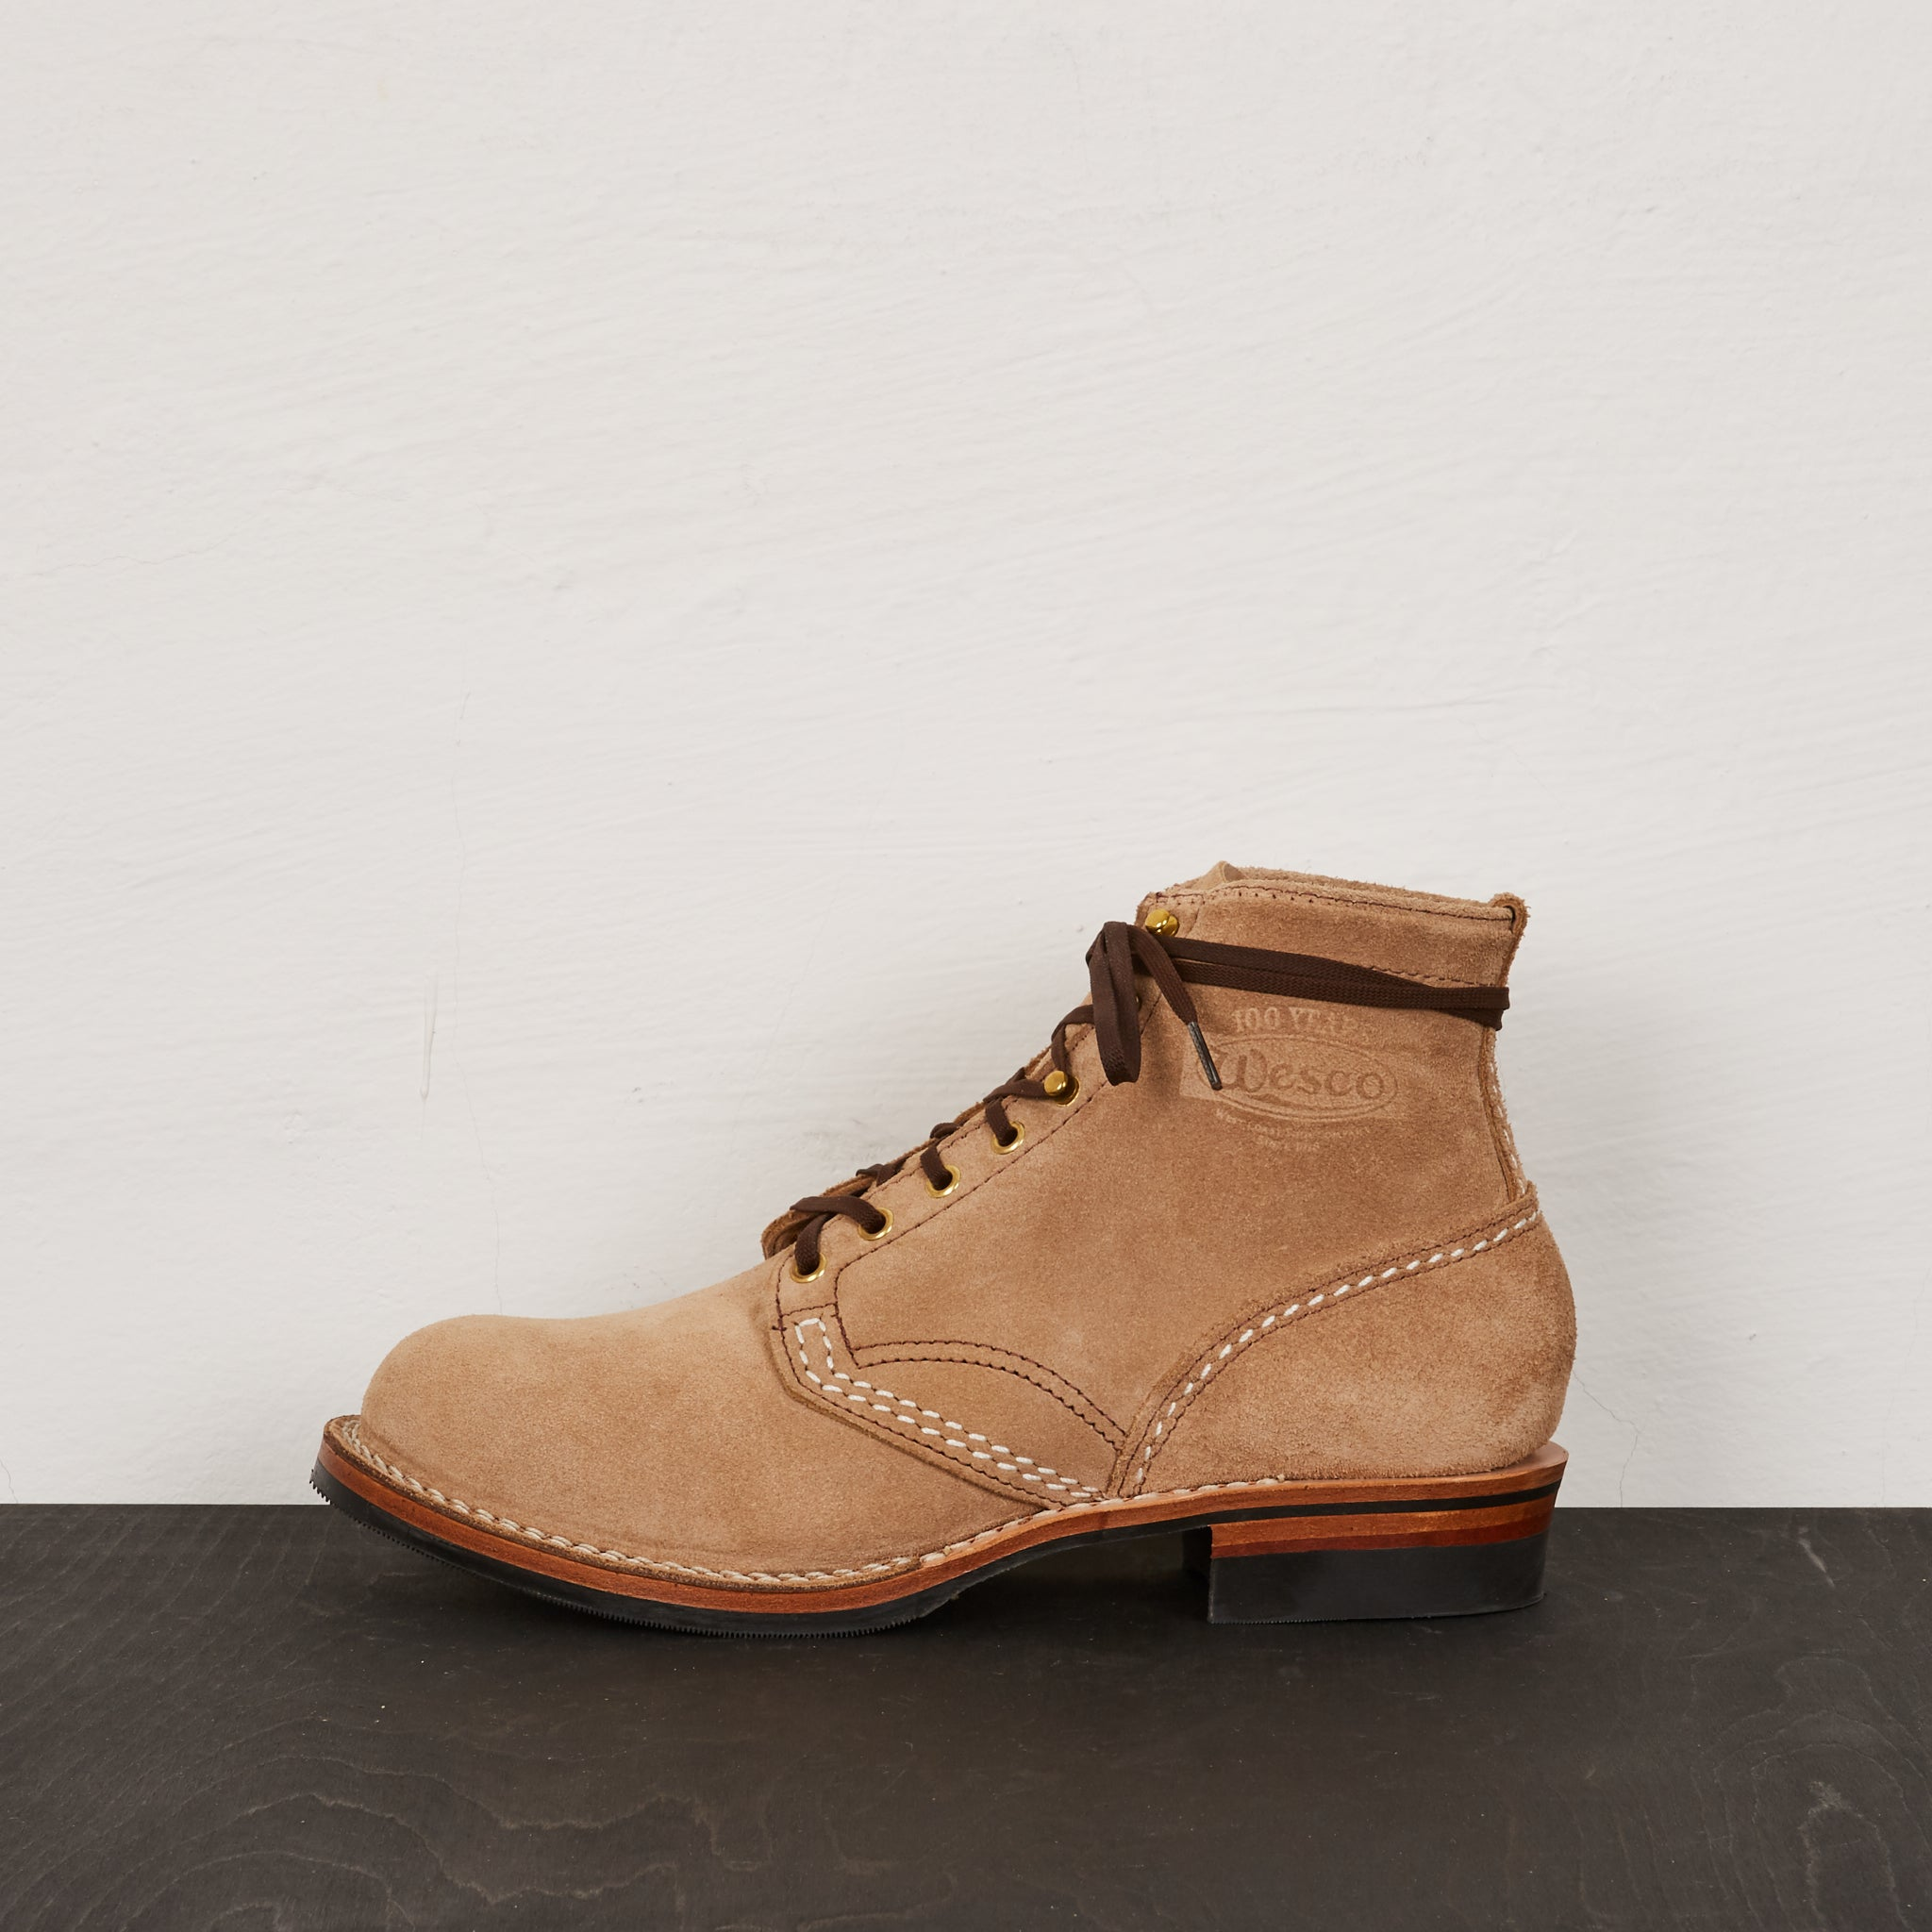 WESCO-Jobmaster-ROB - Custom Jobmaster Roughout Burlap